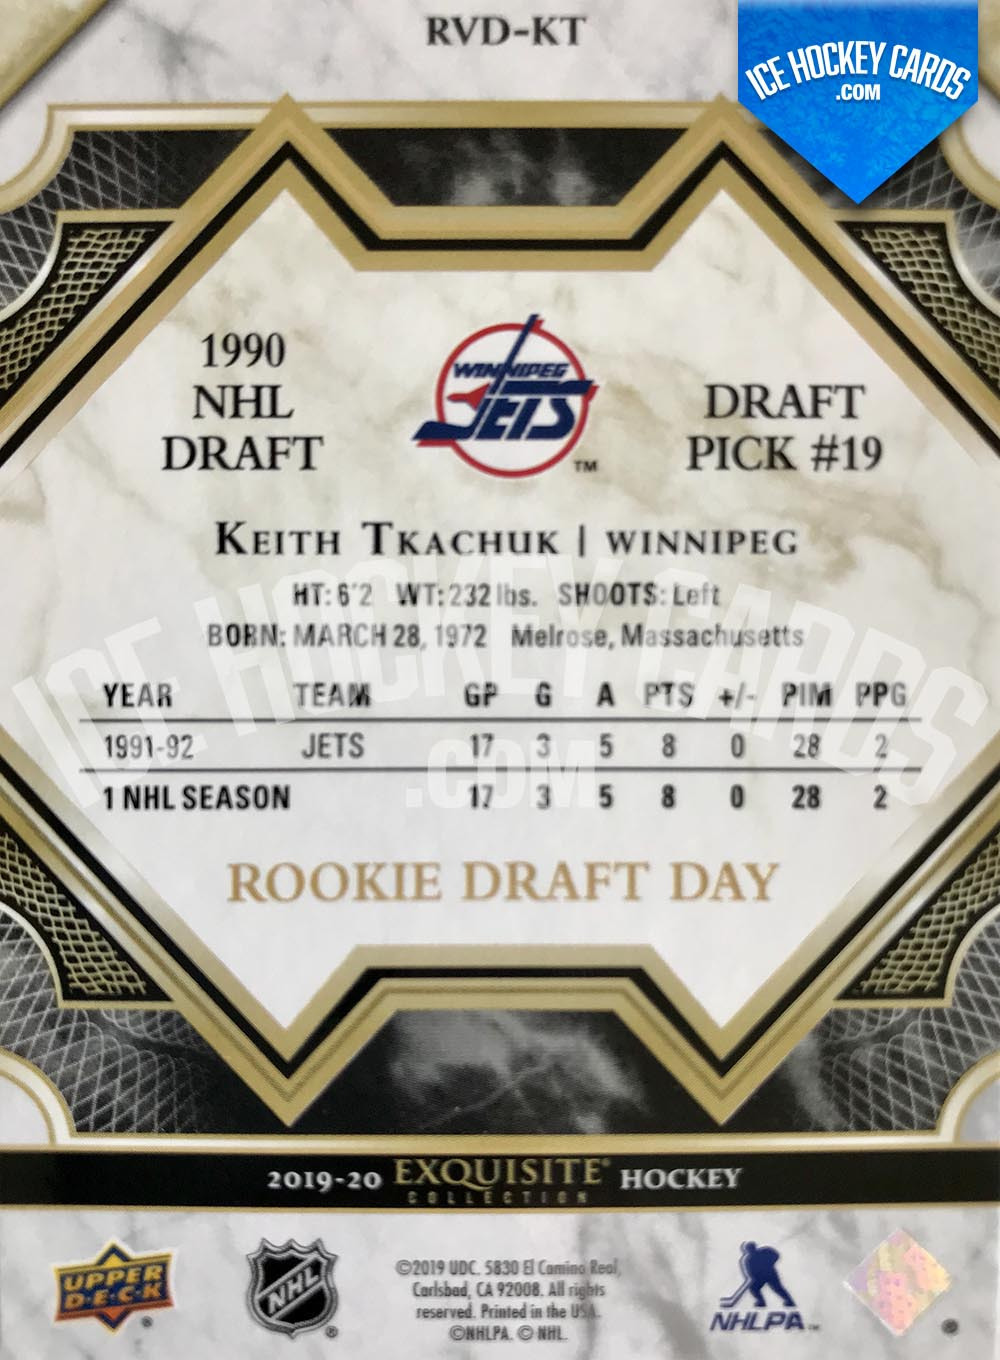 Upper Deck - Exquisite Collection 2019-20 - Keith Tkachuk Rookie Draft Day 1990 NHL Draft Pick #19 back